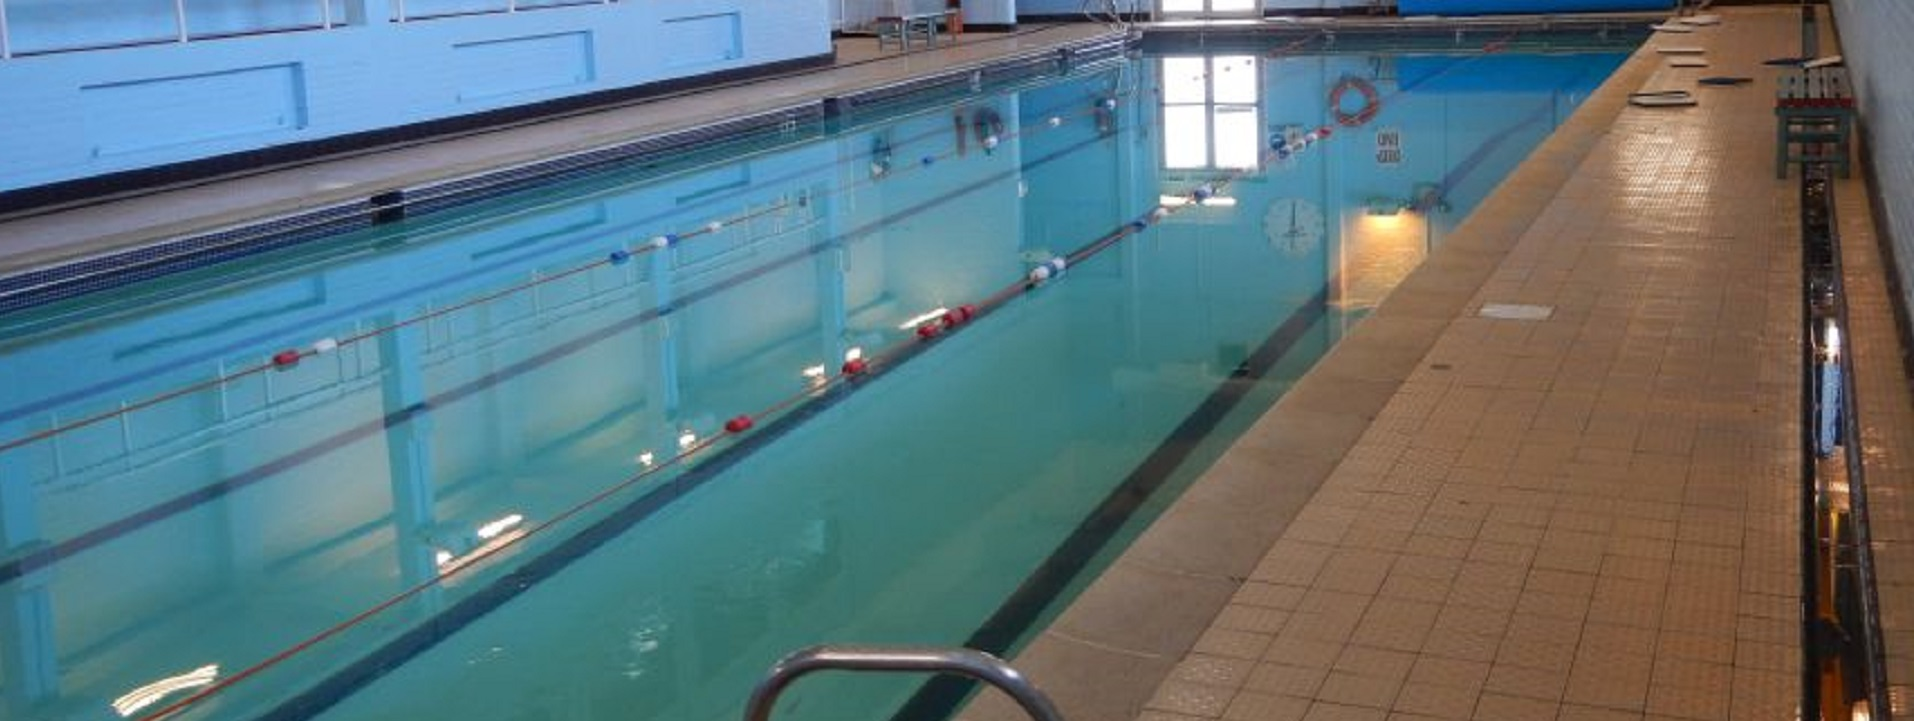 Let us be the home for your swimming club...